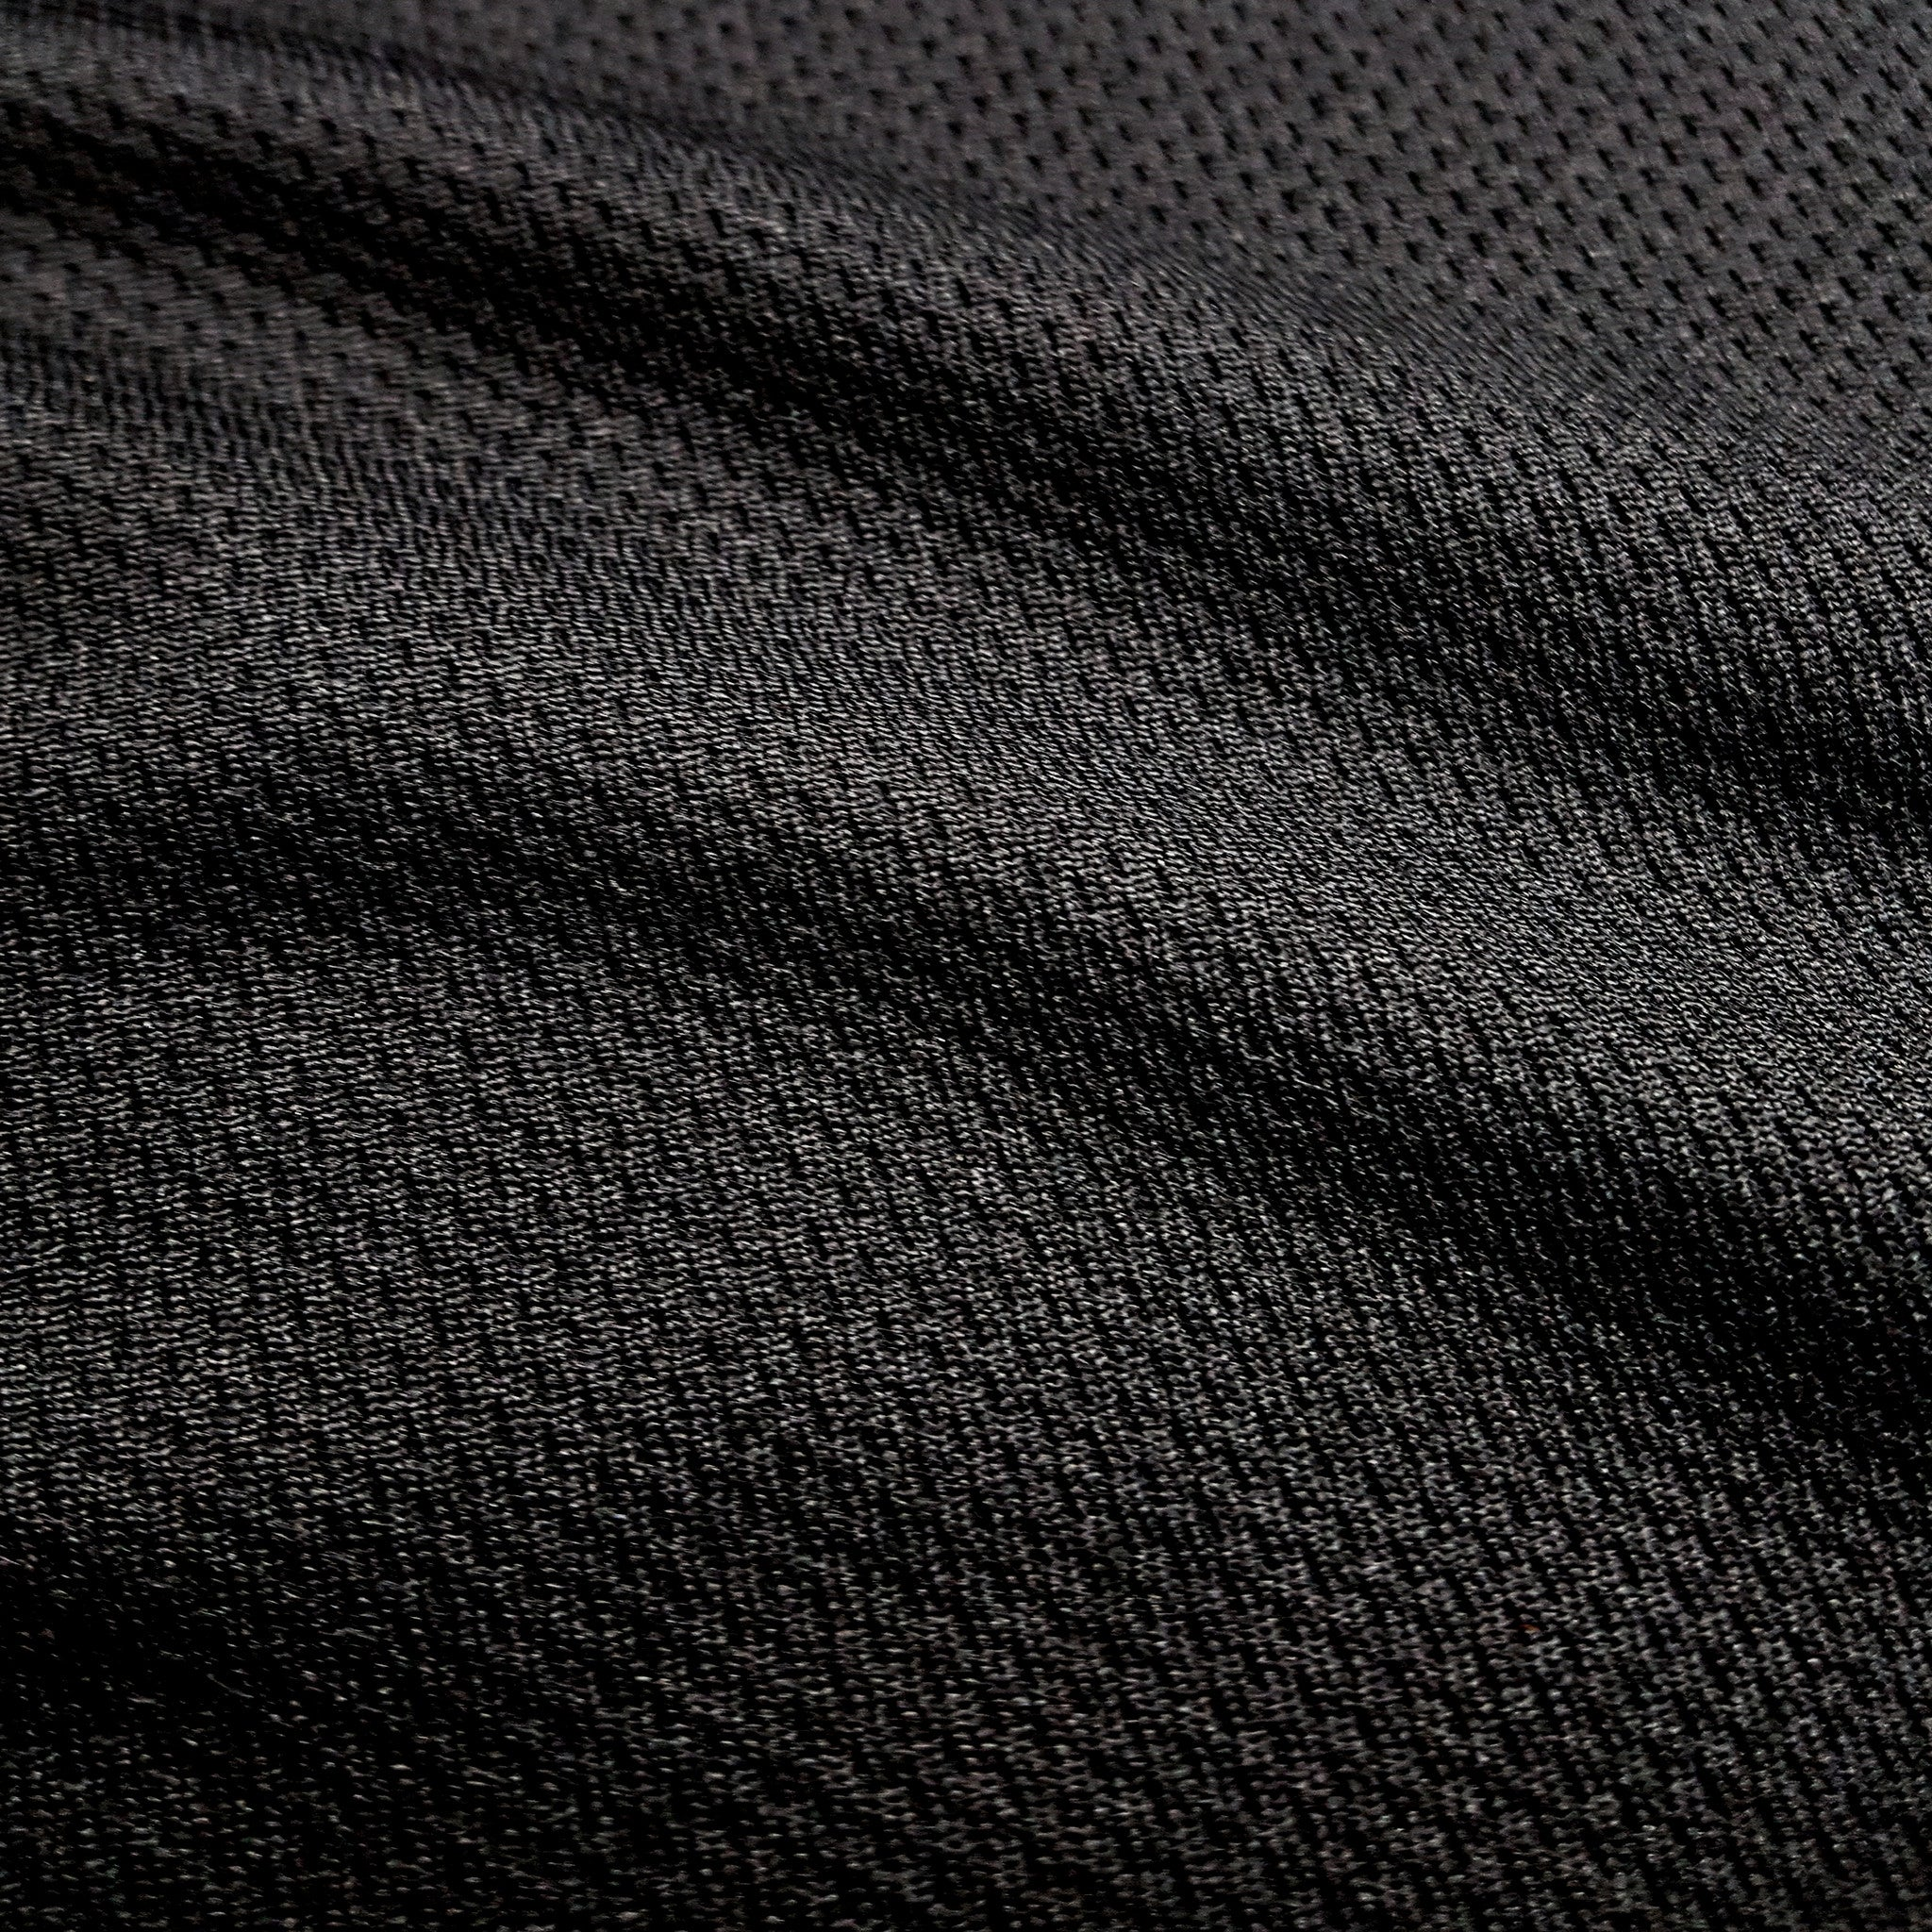 SportyFish Black Series black t-shirt: Black marlin close-up view 4